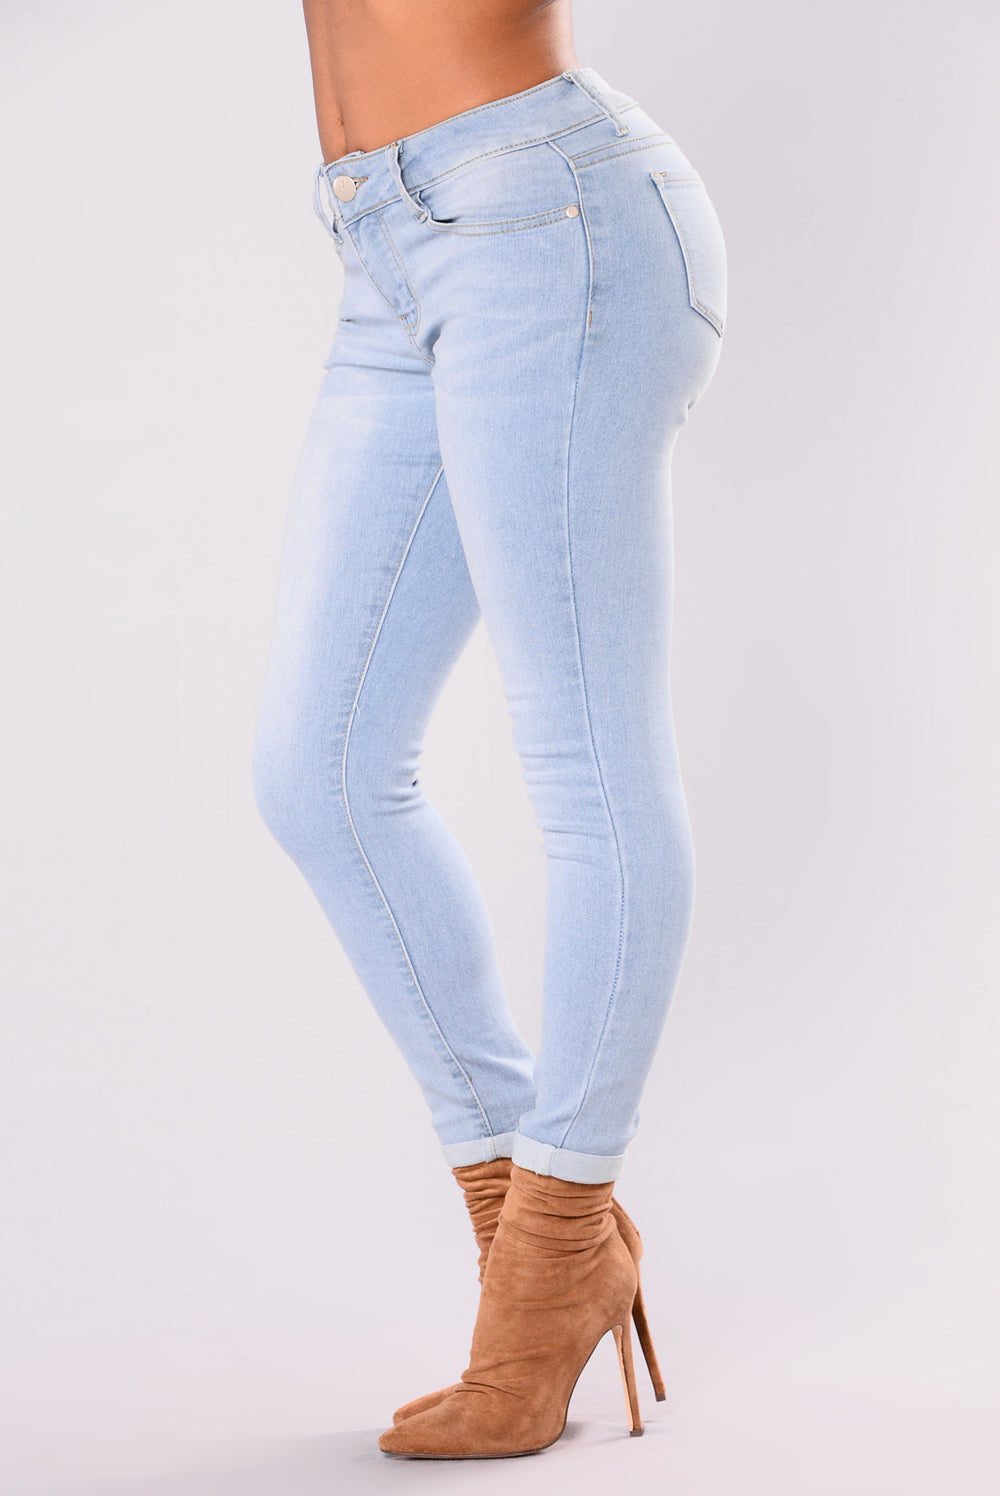 Sugar Baby Ankle Jeans - Light Blue Wash